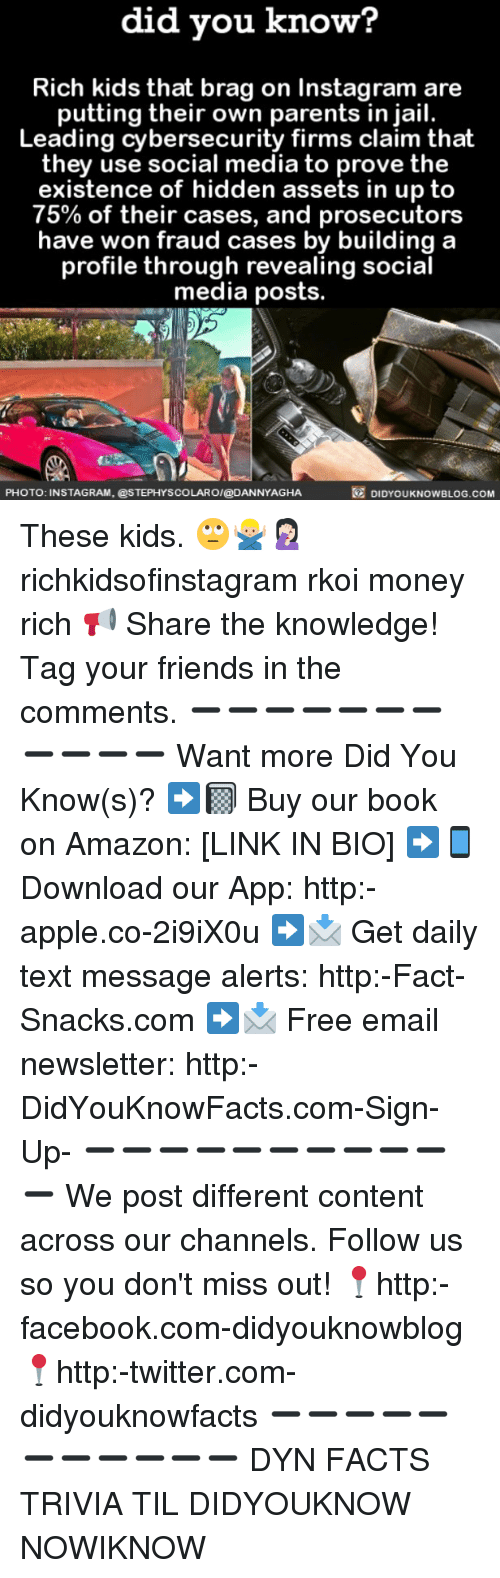 Amazon, Apple, and Facebook: did you know?  Rich kids that brag on Instagram are  putting their own parents in jail.  Leading cybersecurity firms claim that  they use social media to prove the  existence of hidden assets in up to  75% of their cases, and prosecutors  have won fraud cases by building a  profile through revealing social  media posts.  DIDYOUKNOWBLOG.coM  PHOTO: INSTAGRAM, @STEPHYSCOLAROI@DANNYAGHA These kids. 🙄🙅🏼‍♂️🤦🏻‍♀️ richkidsofinstagram rkoi money rich 📢 Share the knowledge! Tag your friends in the comments. ➖➖➖➖➖➖➖➖➖➖➖ Want more Did You Know(s)? ➡📓 Buy our book on Amazon: [LINK IN BIO] ➡📱 Download our App: http:-apple.co-2i9iX0u ➡📩 Get daily text message alerts: http:-Fact-Snacks.com ➡📩 Free email newsletter: http:-DidYouKnowFacts.com-Sign-Up- ➖➖➖➖➖➖➖➖➖➖➖ We post different content across our channels. Follow us so you don't miss out! 📍http:-facebook.com-didyouknowblog 📍http:-twitter.com-didyouknowfacts ➖➖➖➖➖➖➖➖➖➖➖ DYN FACTS TRIVIA TIL DIDYOUKNOW NOWIKNOW